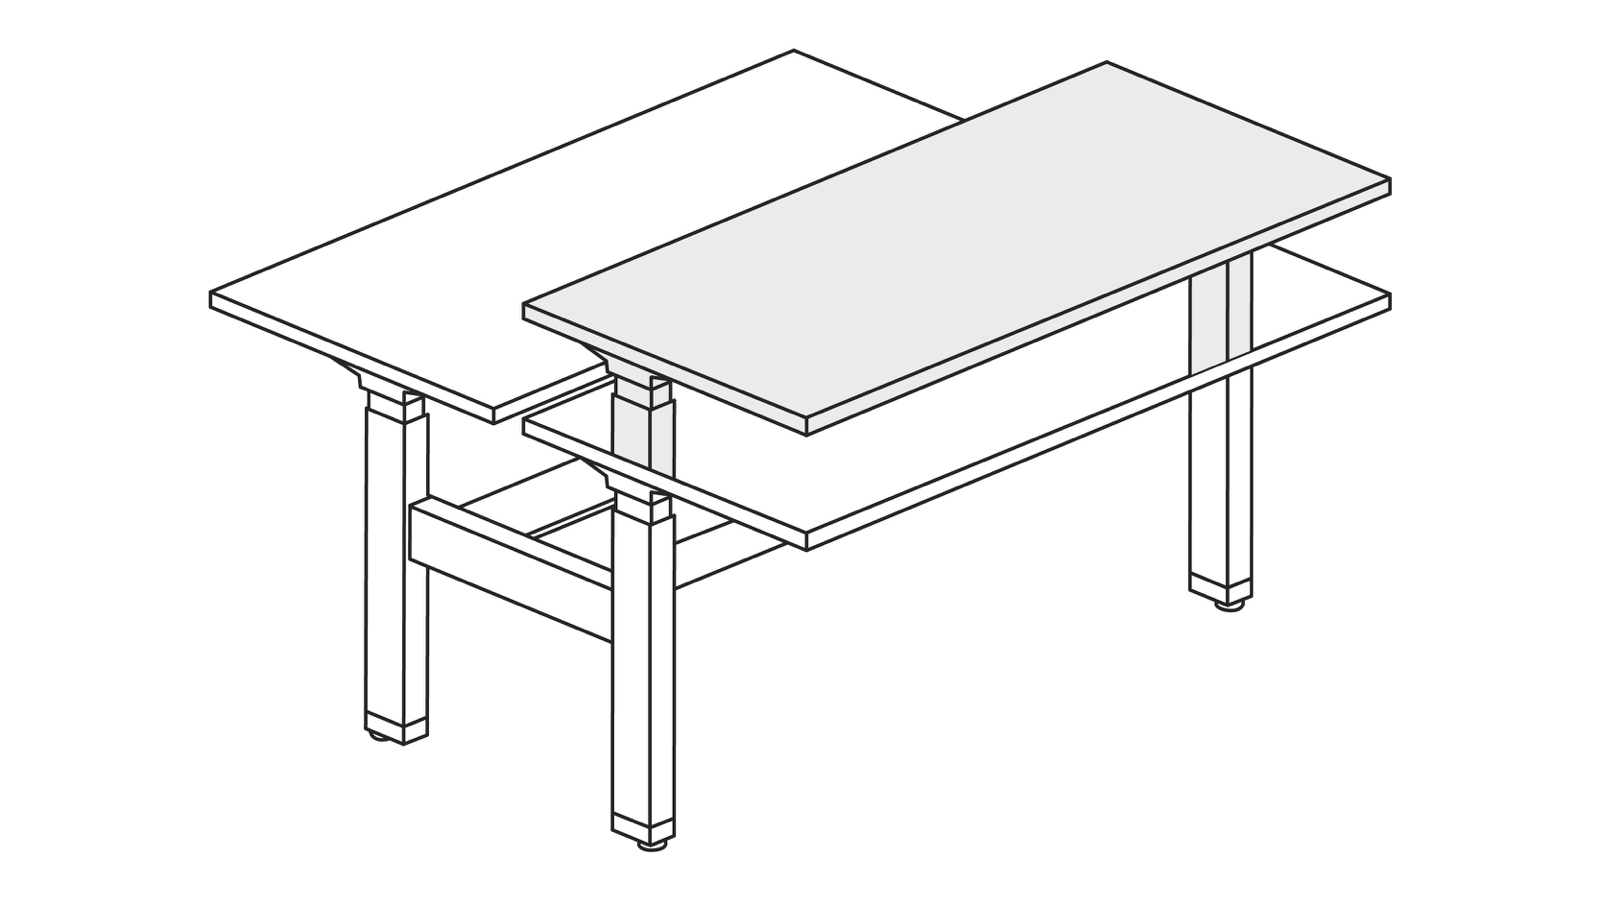 A line drawing of a Renew Link standing desk system with one desk raised to standing height.